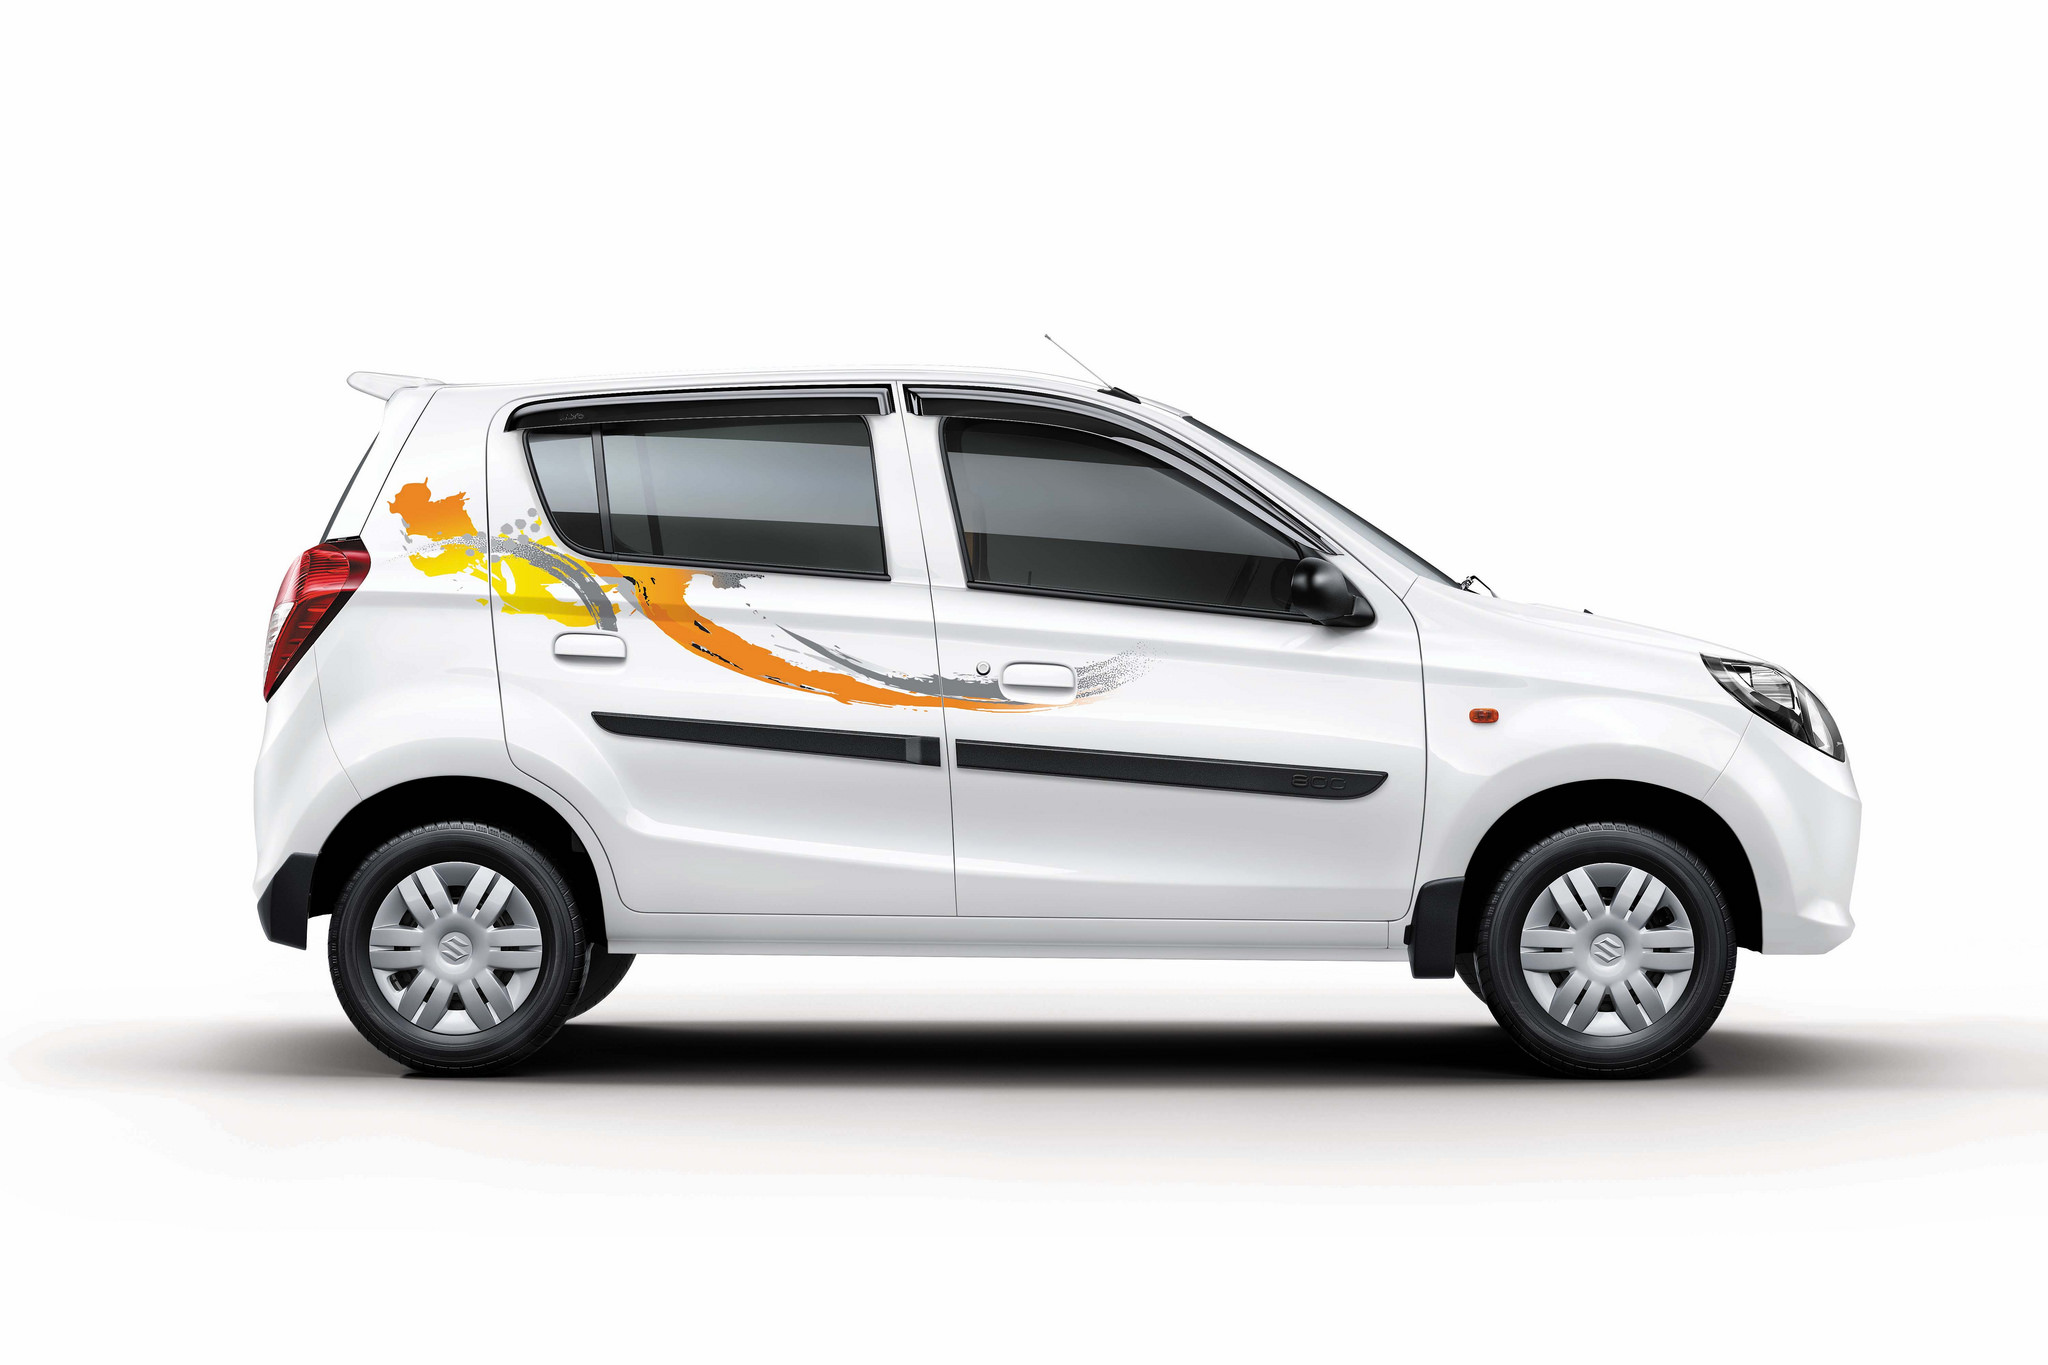 Maruti Alto 800 Onam Edition - limited to Kerala only